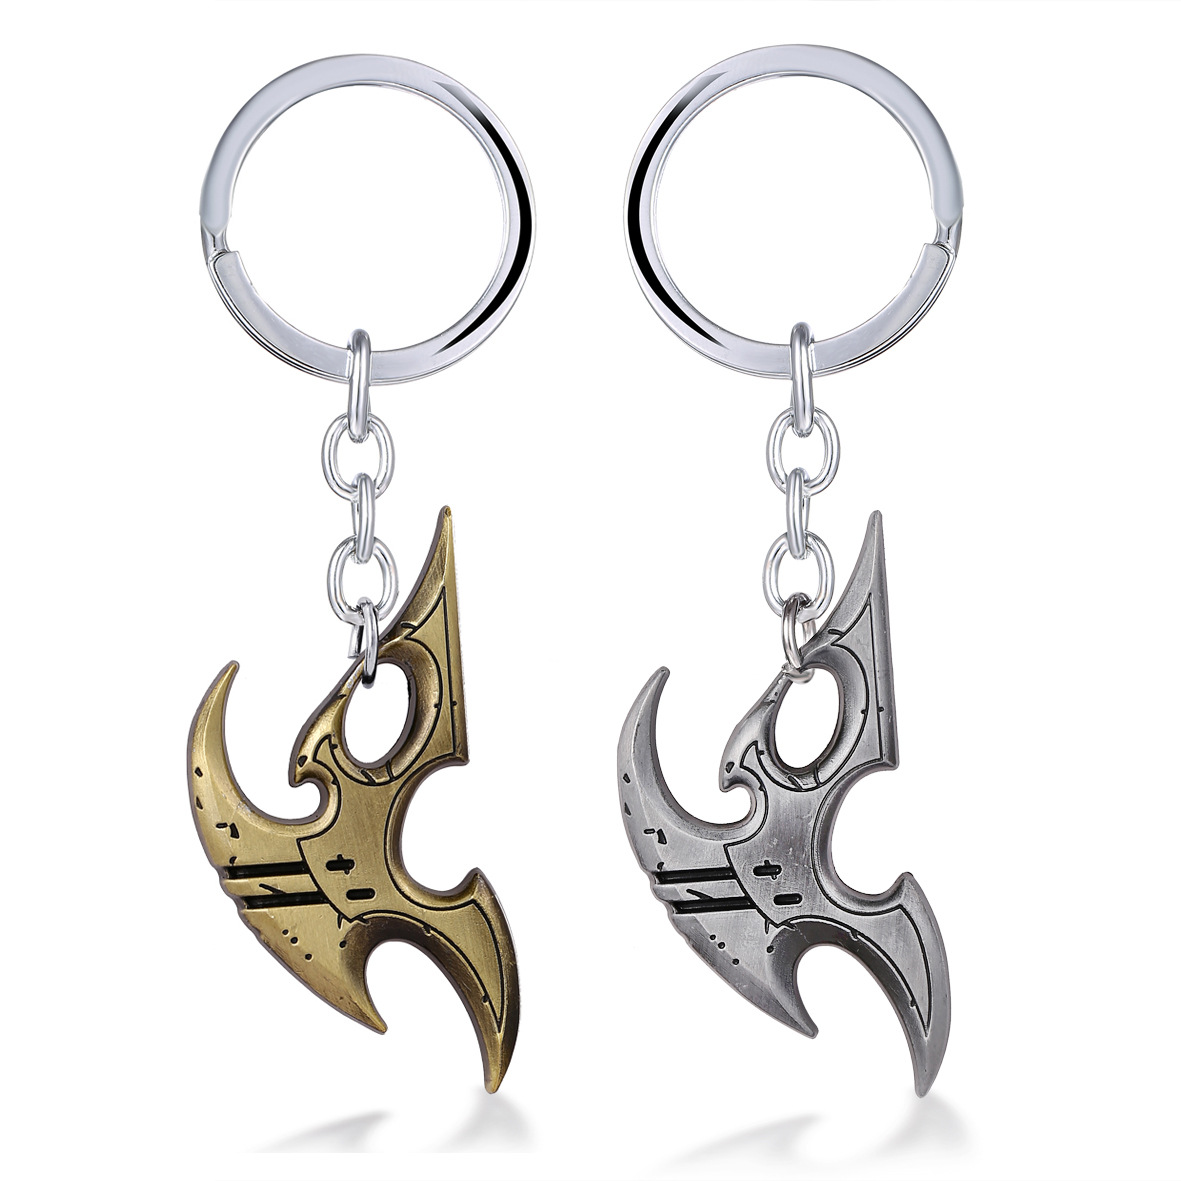 The Zerg Terran And Protoss Figure Pendant Best friends Gift The Wings Of Liberty friendship jewelry gift for Men and boys image